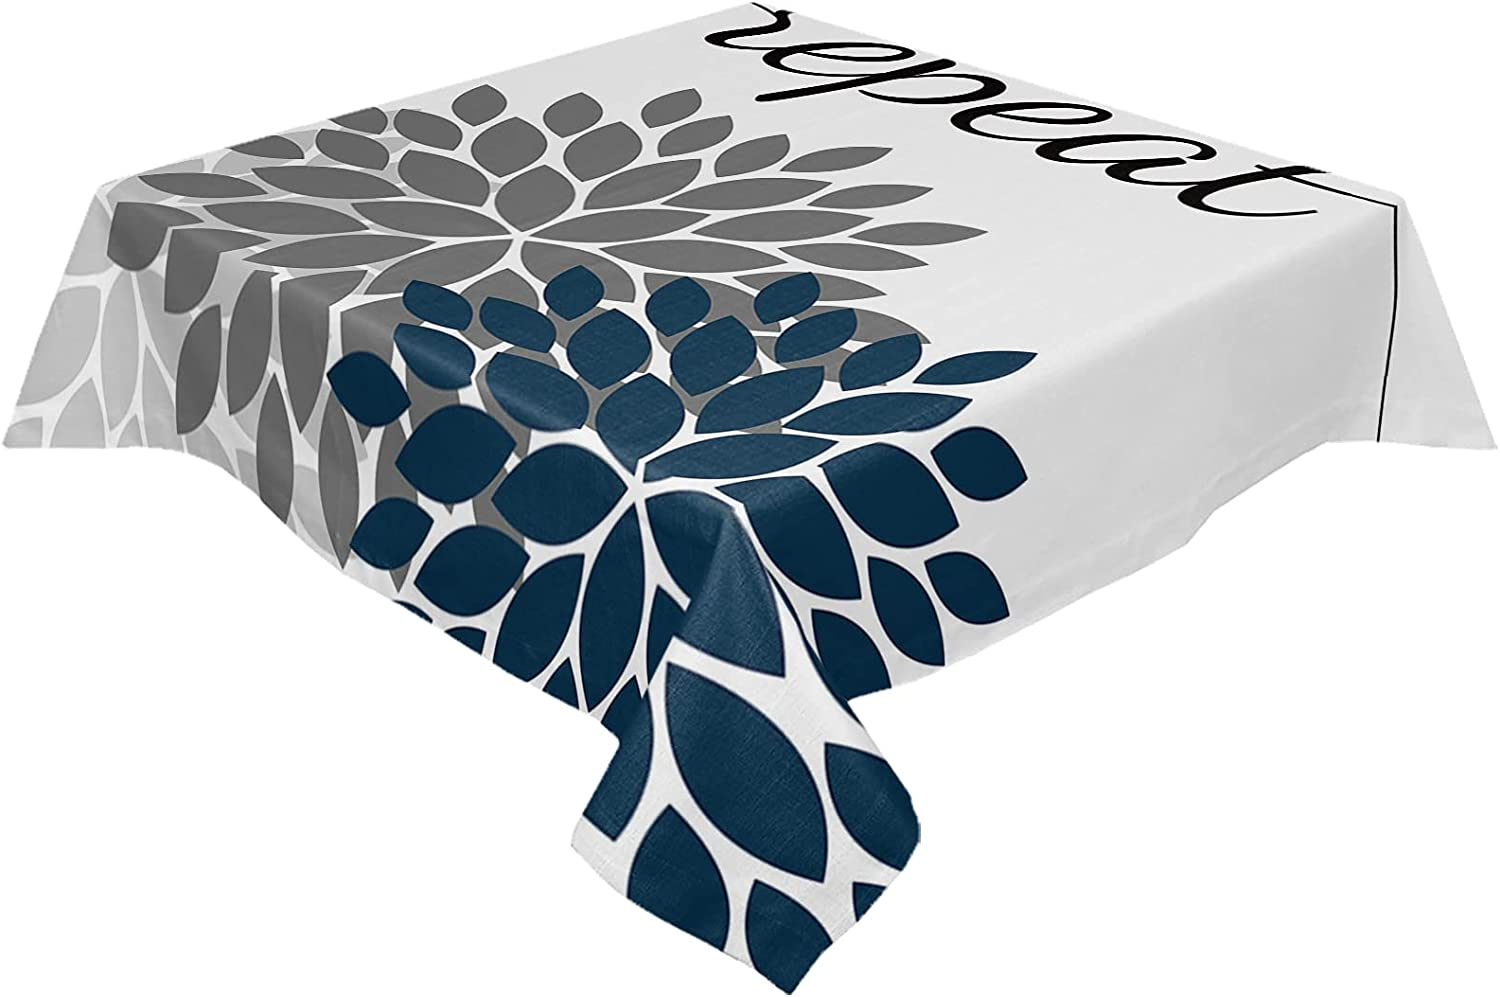 BABE MAPS Floral Table Cloths Outlet sale feature Max 74% OFF Wrinkle Rectangul Free Waterproof